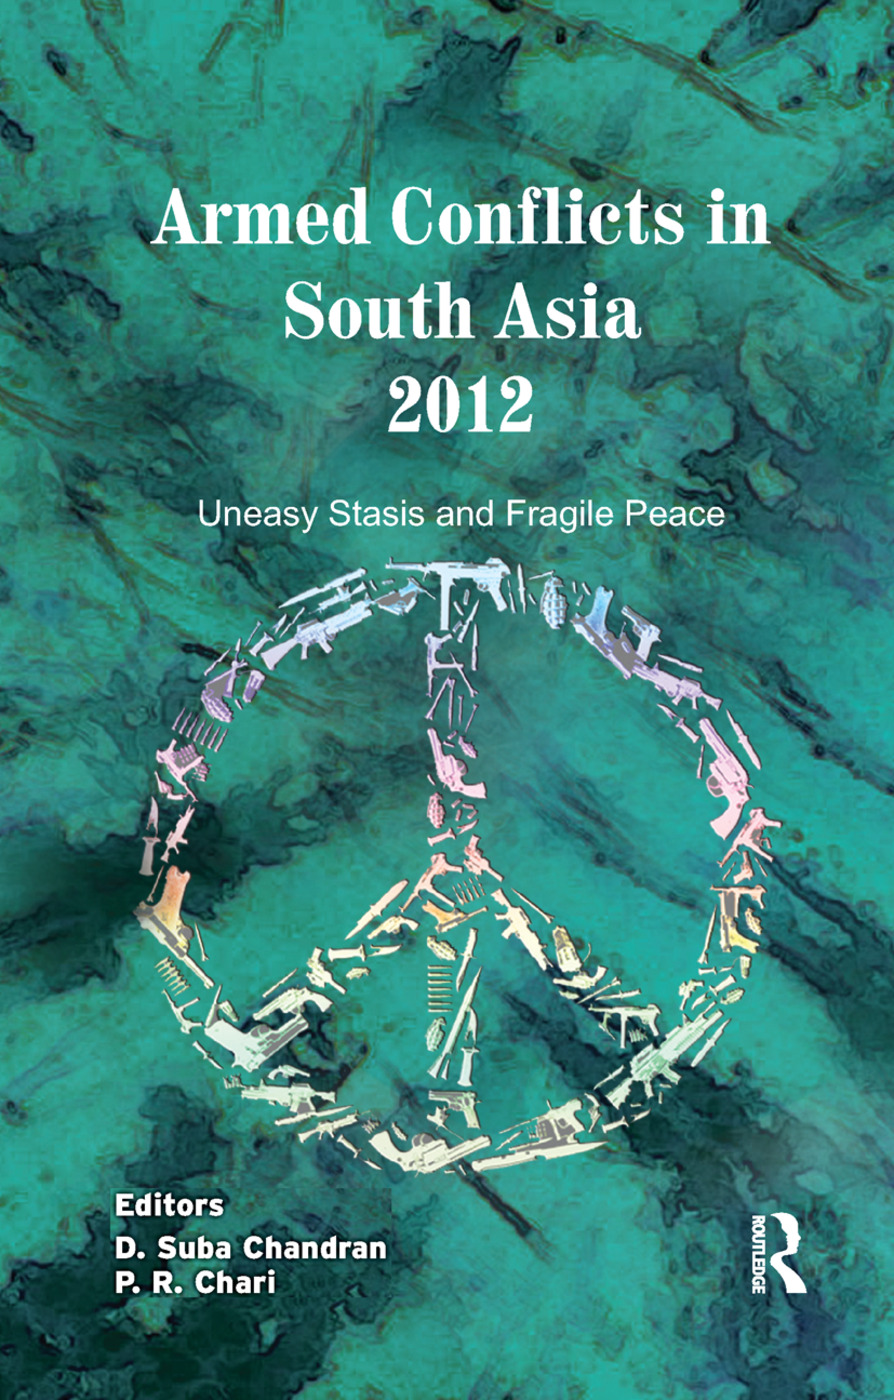 Armed Conflicts in South Asia 2012: Uneasy Stasis and Fragile Peace book cover